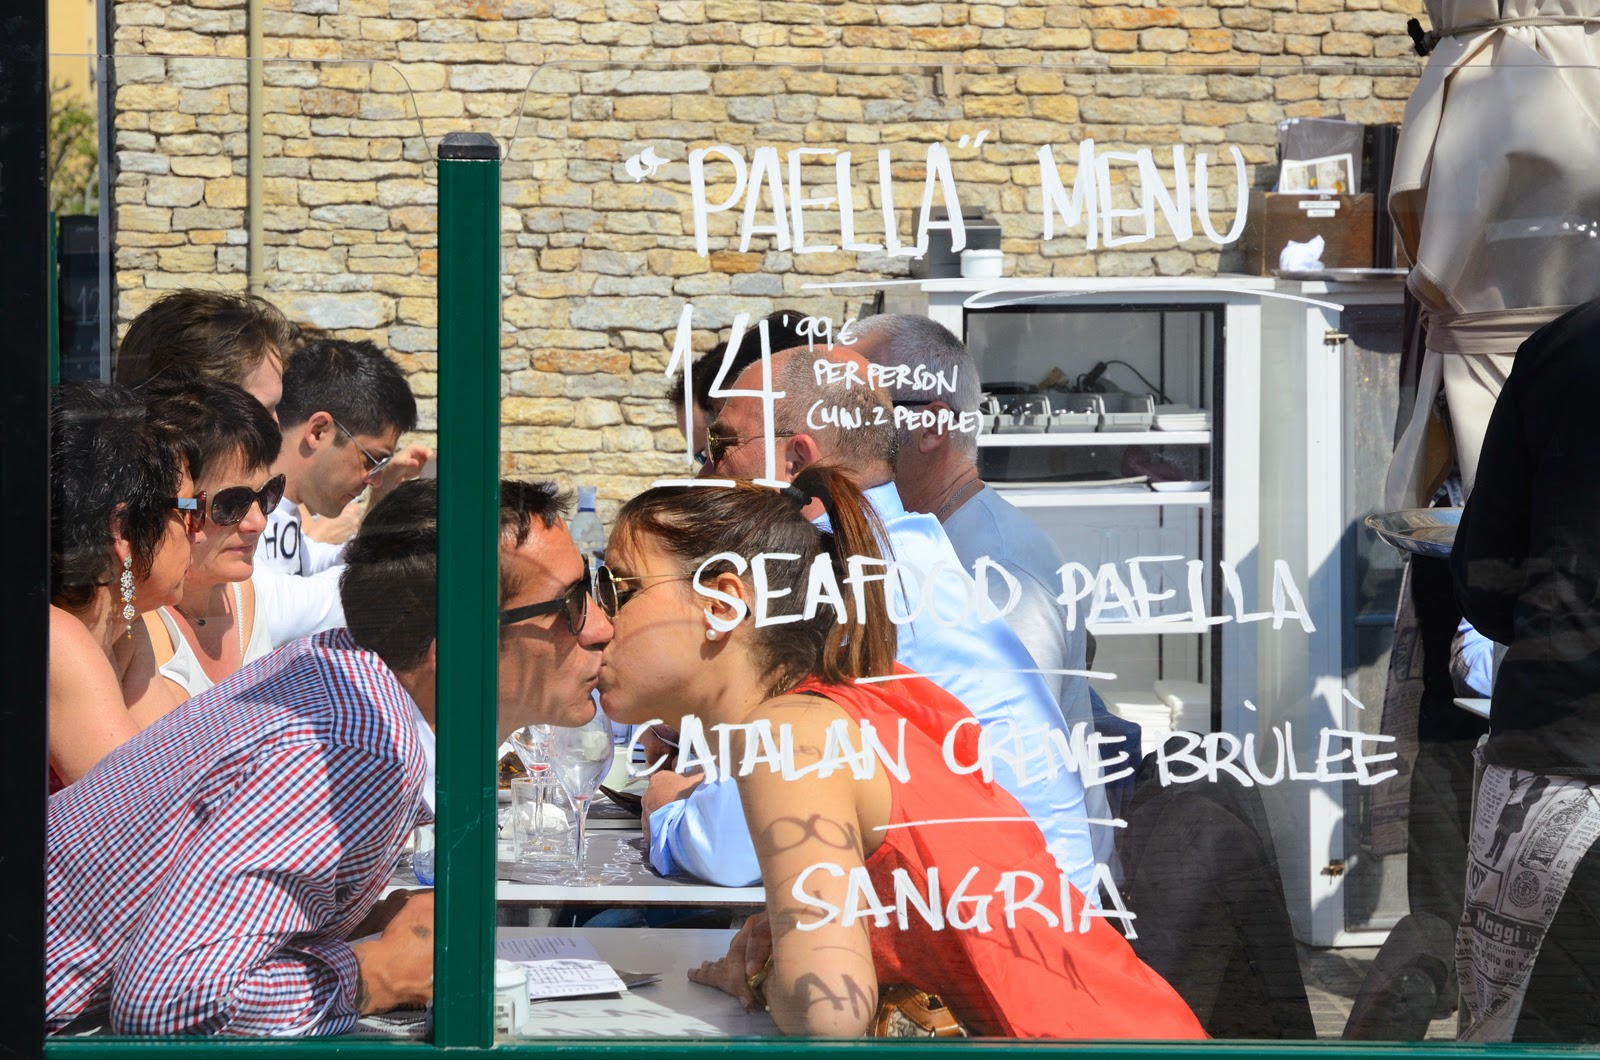 Lovers kissing at Paella restaurant, Barceloneta